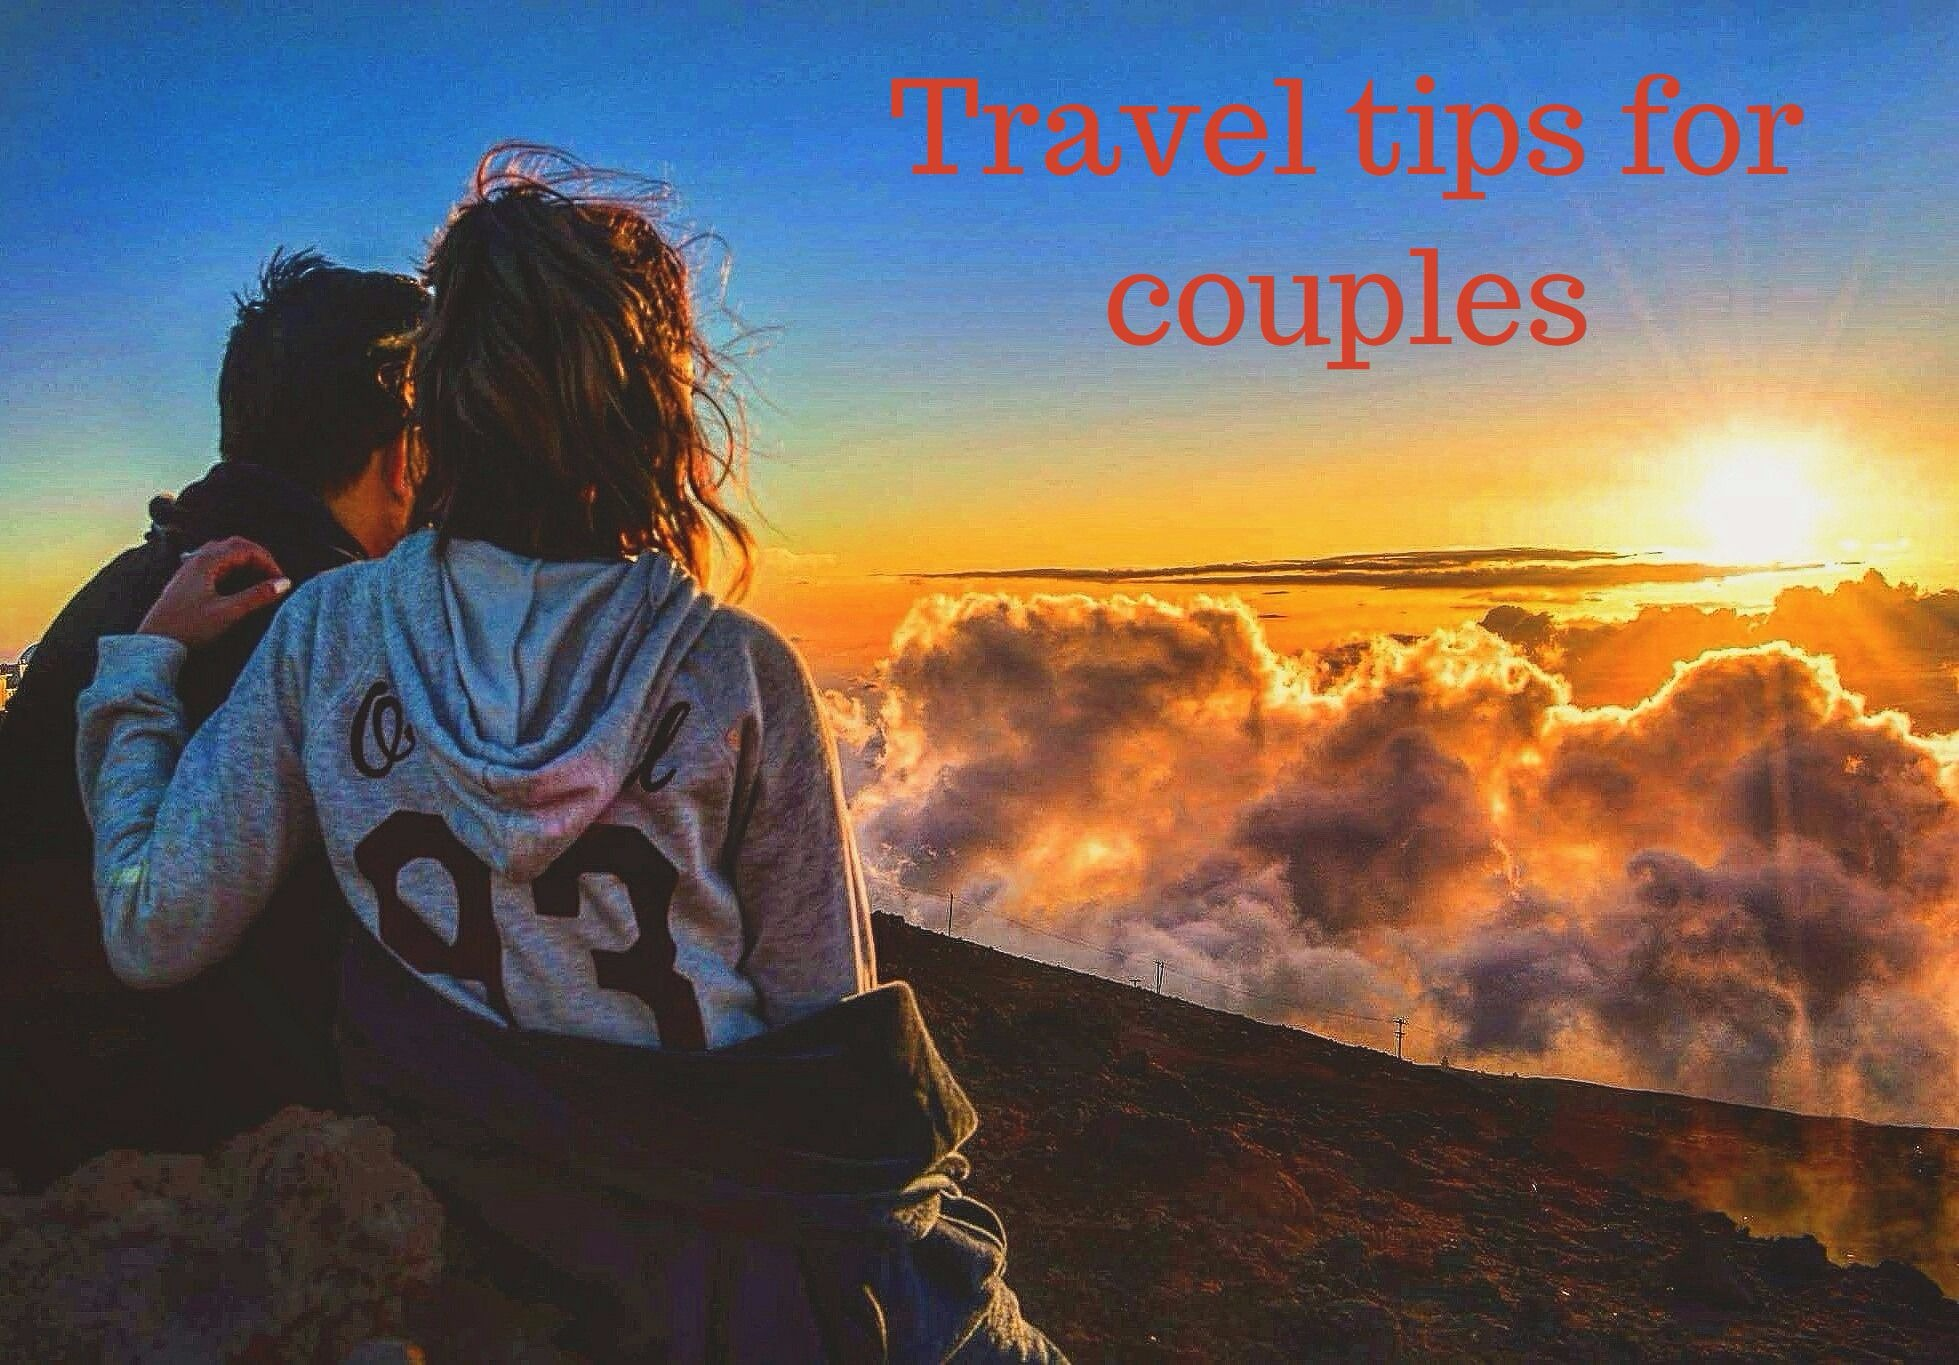 TRAVEL GOALS FOR COUPLES